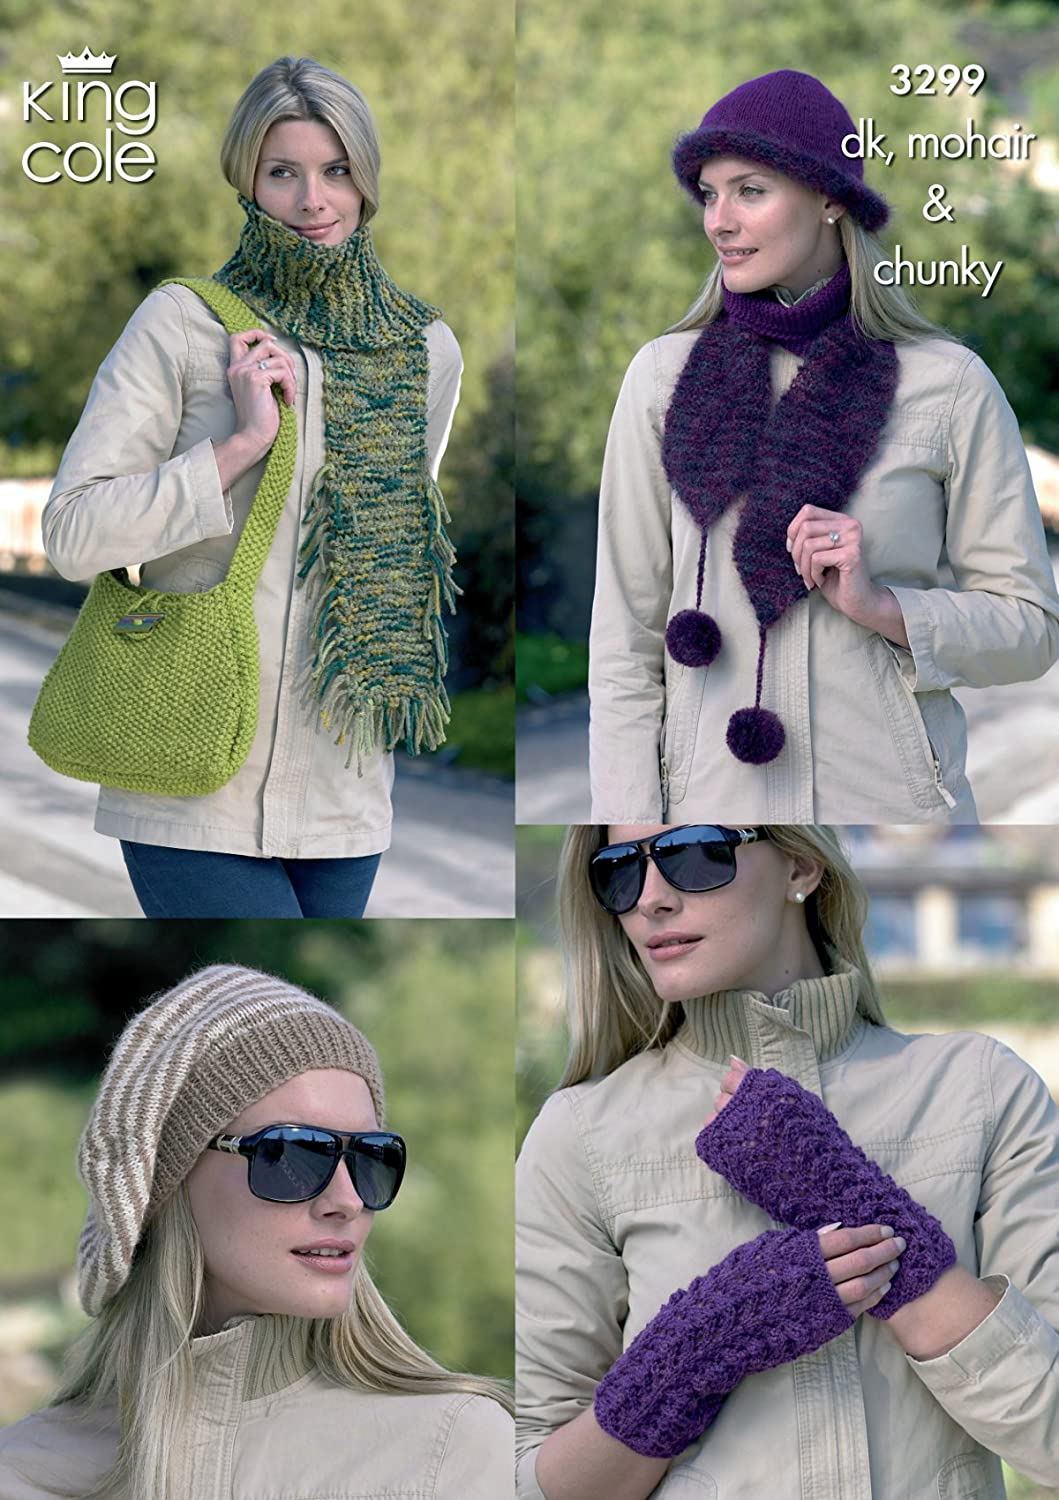 King Cole Womens Double Knit & Chunky Knitting Pattern Ladies Hats Scarves Bag Wrist Warmers (3299)